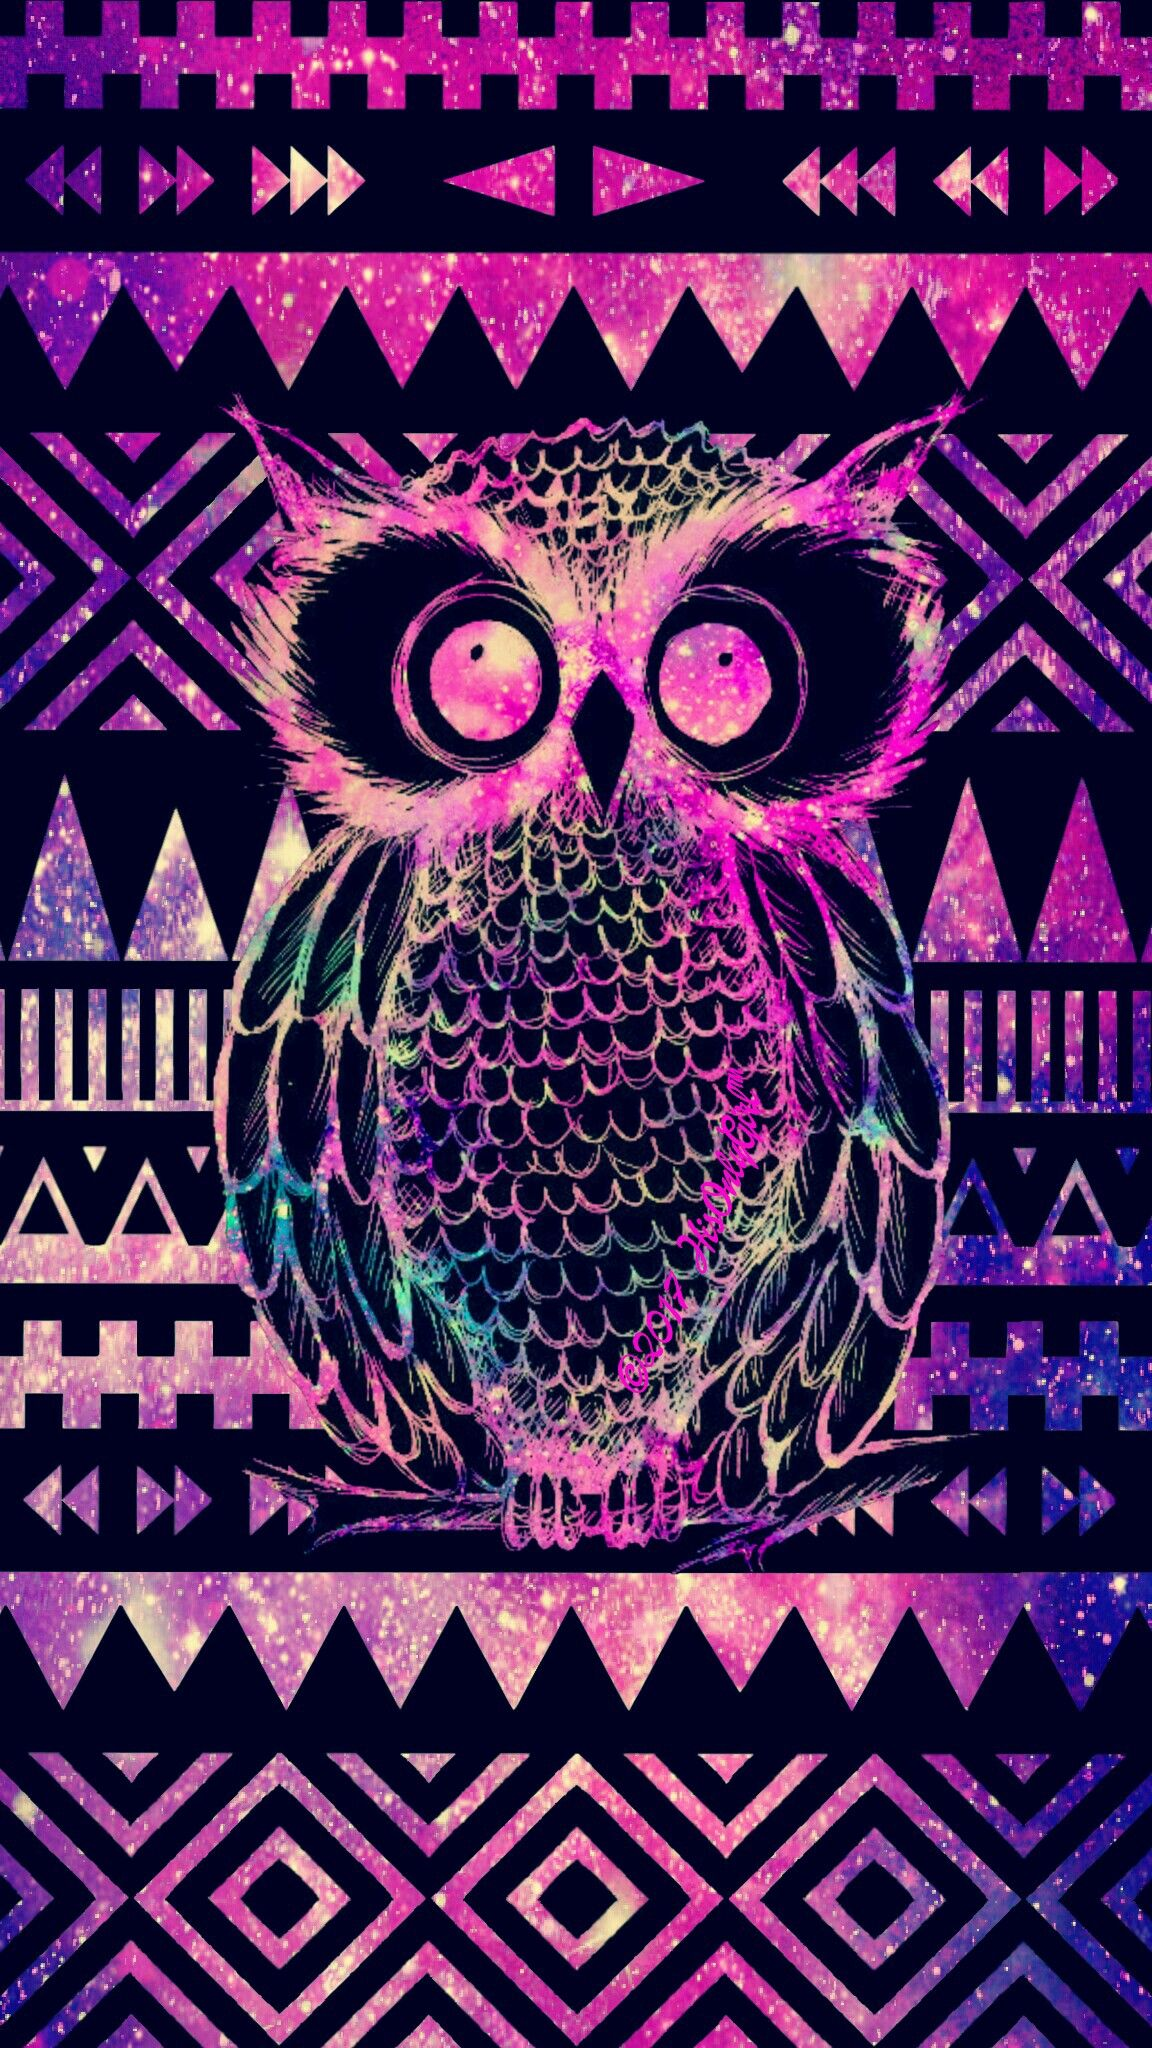 Tribal Owl Aztec Galaxy Wallpaper I Created For The App CocoPPa